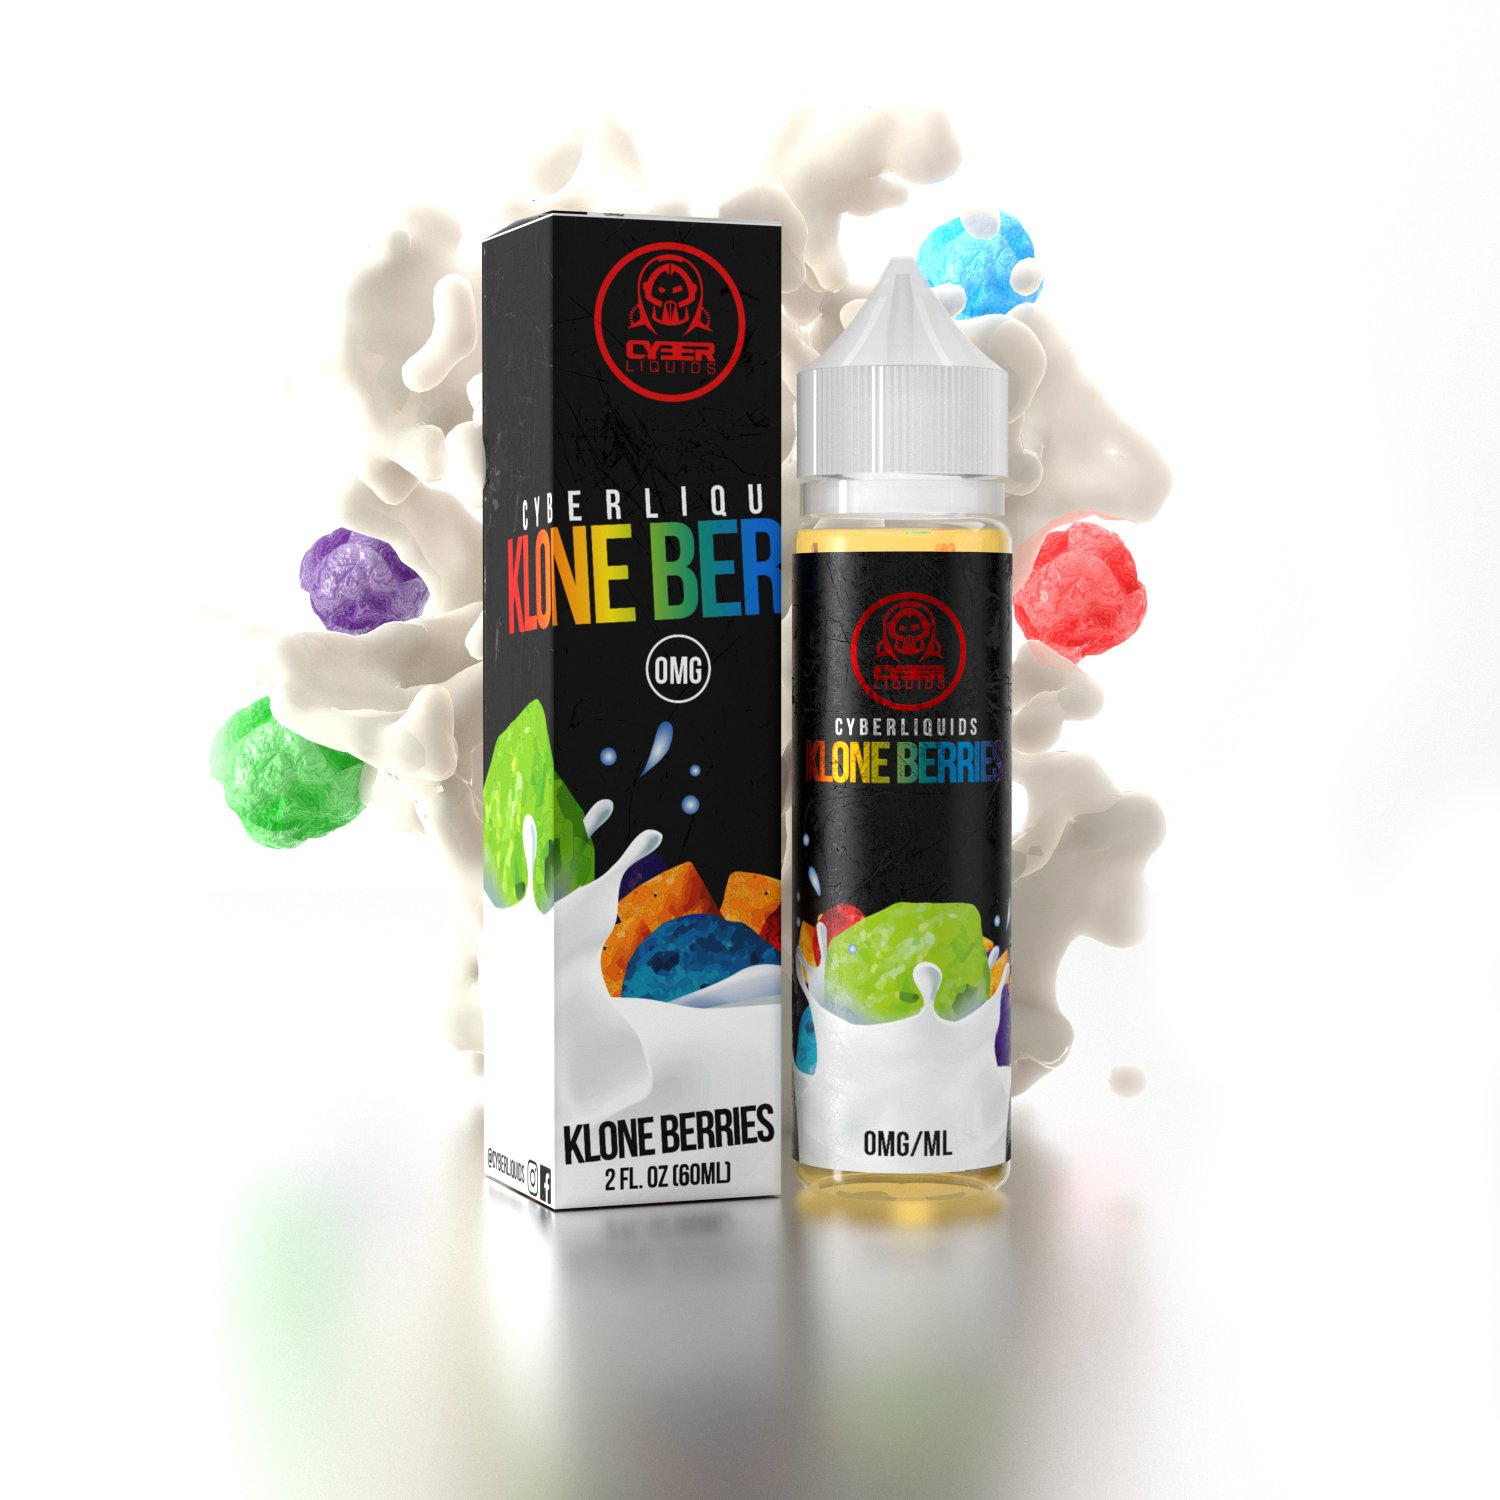 Cyberliquids – Klone Berries 50ml Short Fill